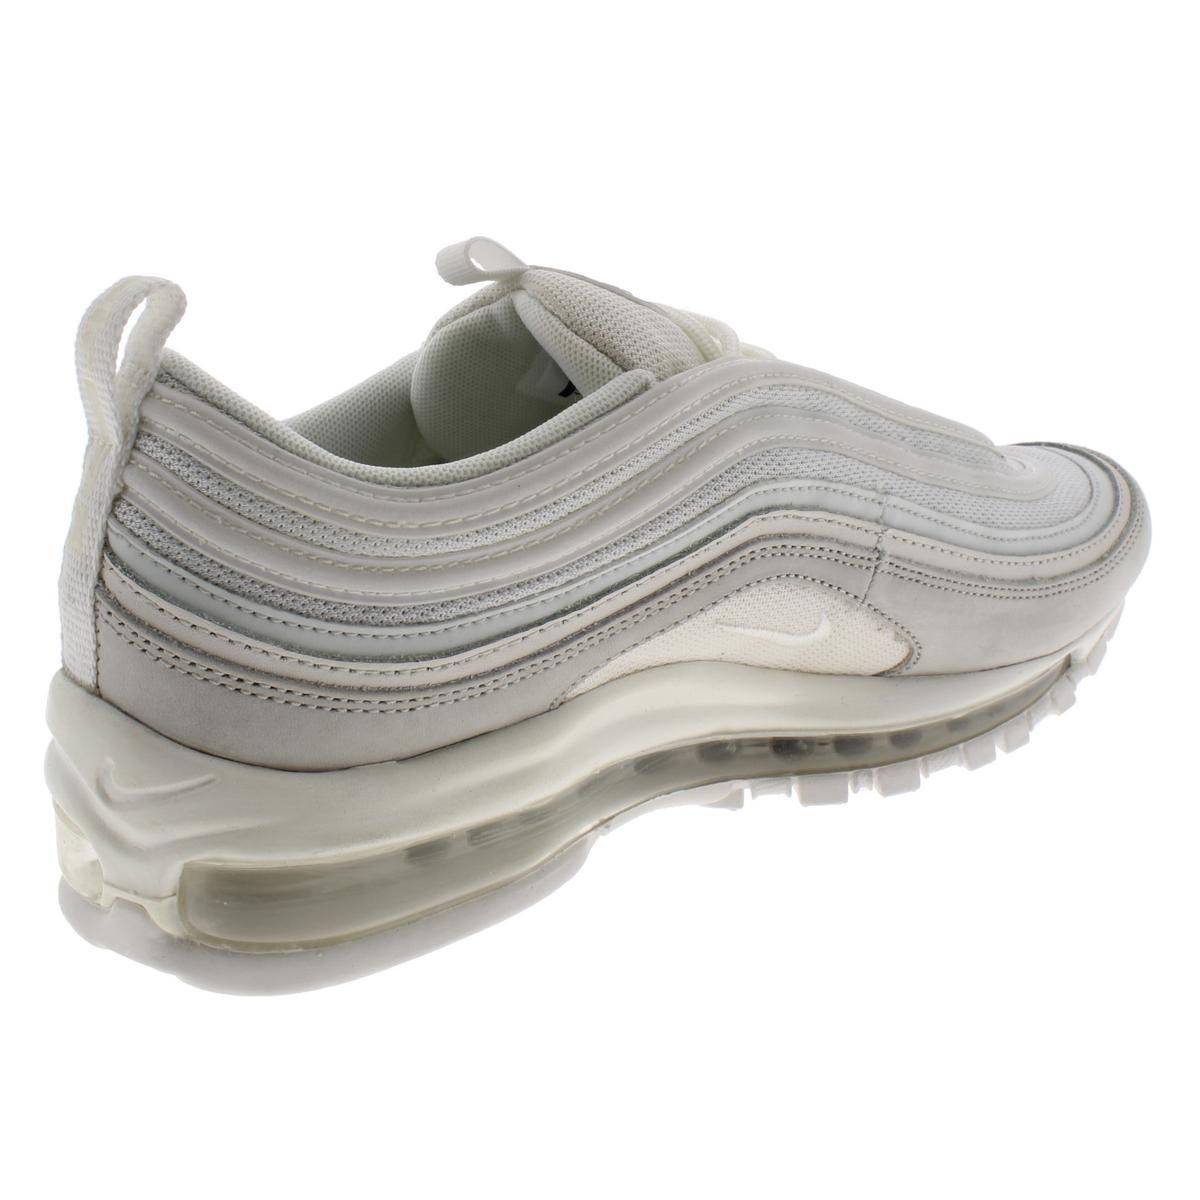 Details about Nike Mens Air Max 97 Premium Running Low Top Athletic Shoes Sneakers BHFO 3987